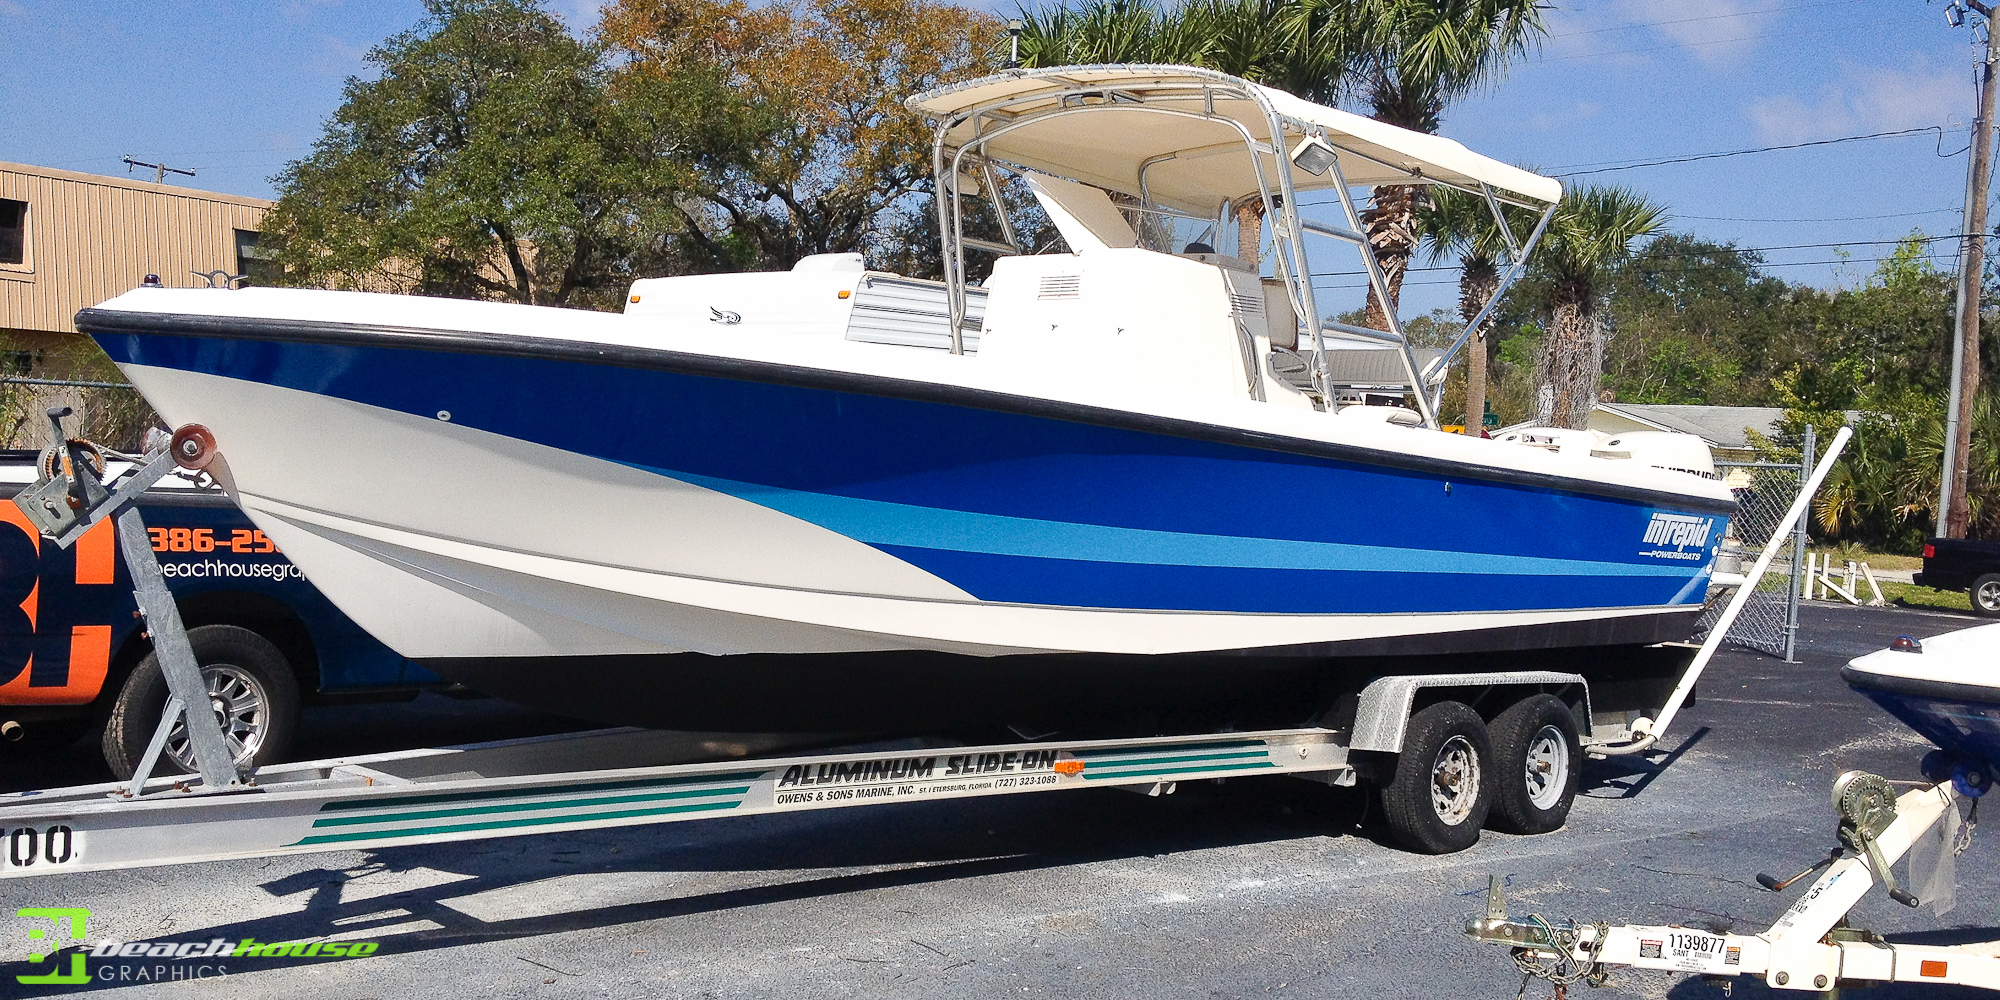 Boat Wrap Custom Vehicle Wraps - Vinyl boat graphics decals